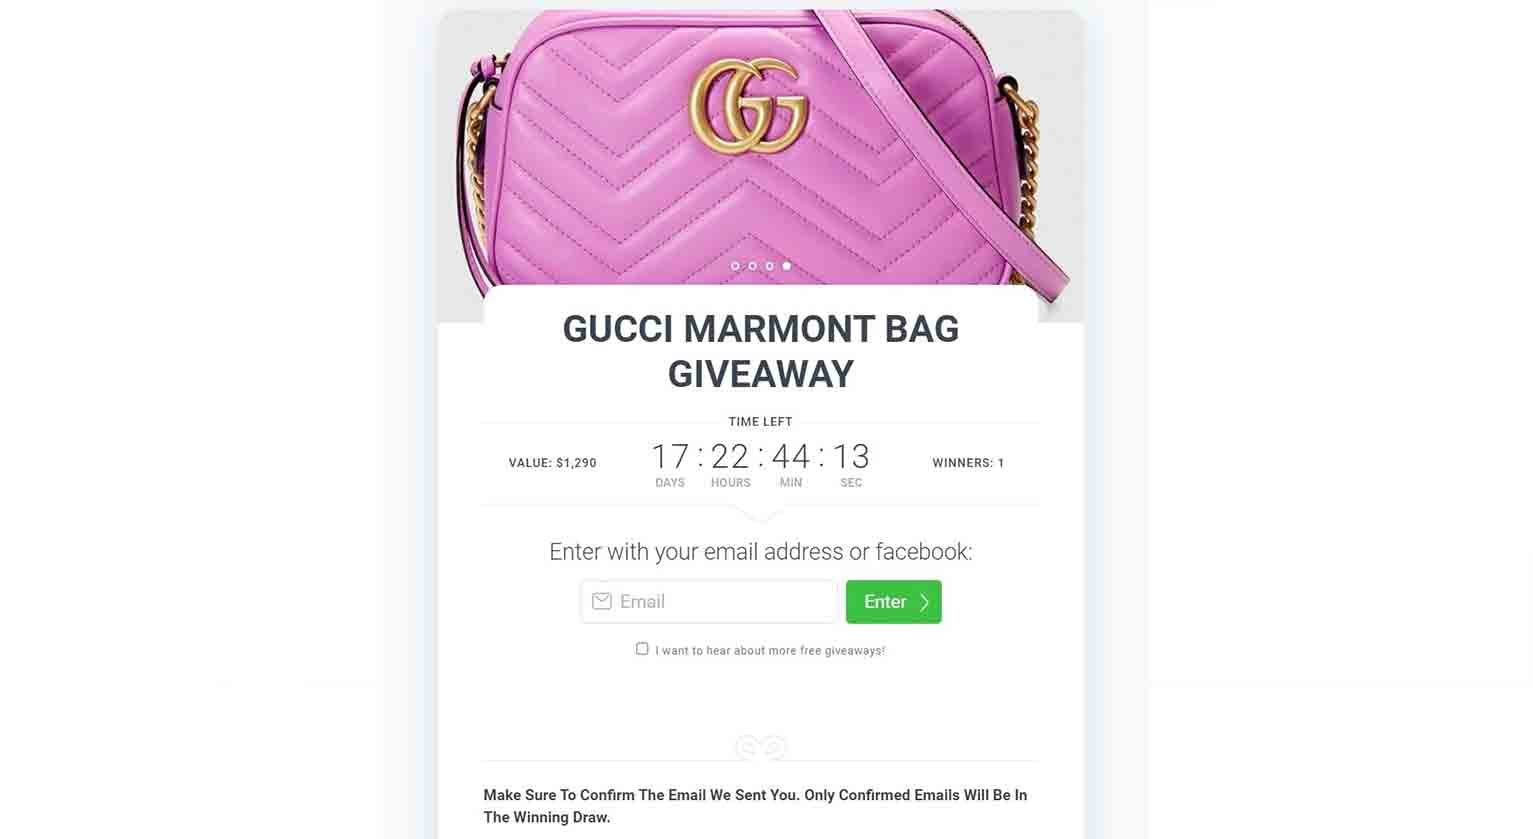 Jewelry retailer Viva Cali hosted a limited-time giveaway for the Gucci Marmont Bag.